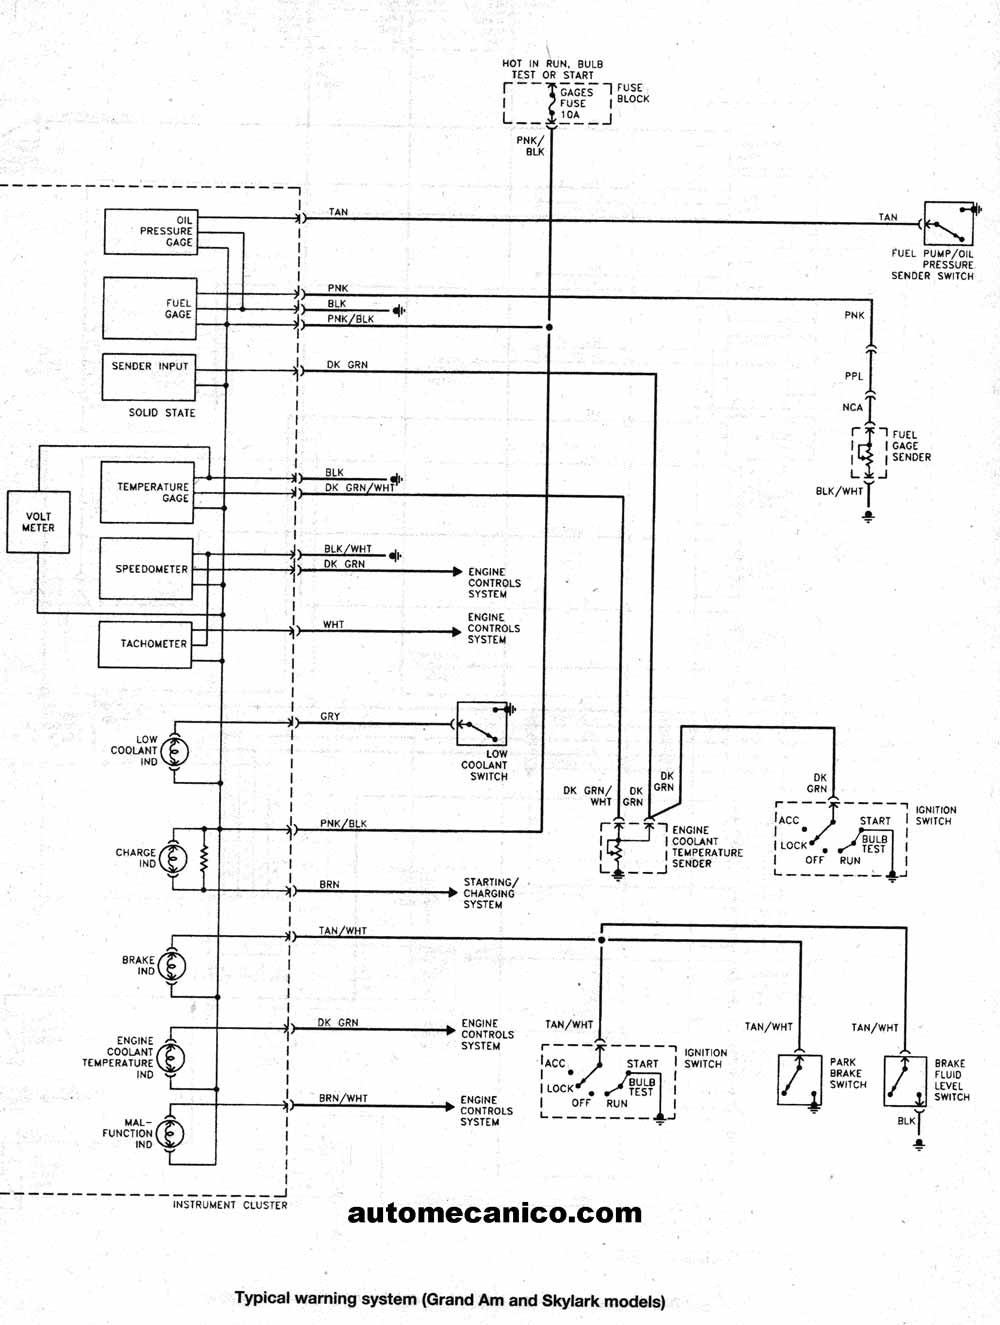 2006 Pontiac Sunfire Starter Wiring Diagram Not Lossing Belt 1994 Sunbird 97 Grand Am Get Free Image About For 2000